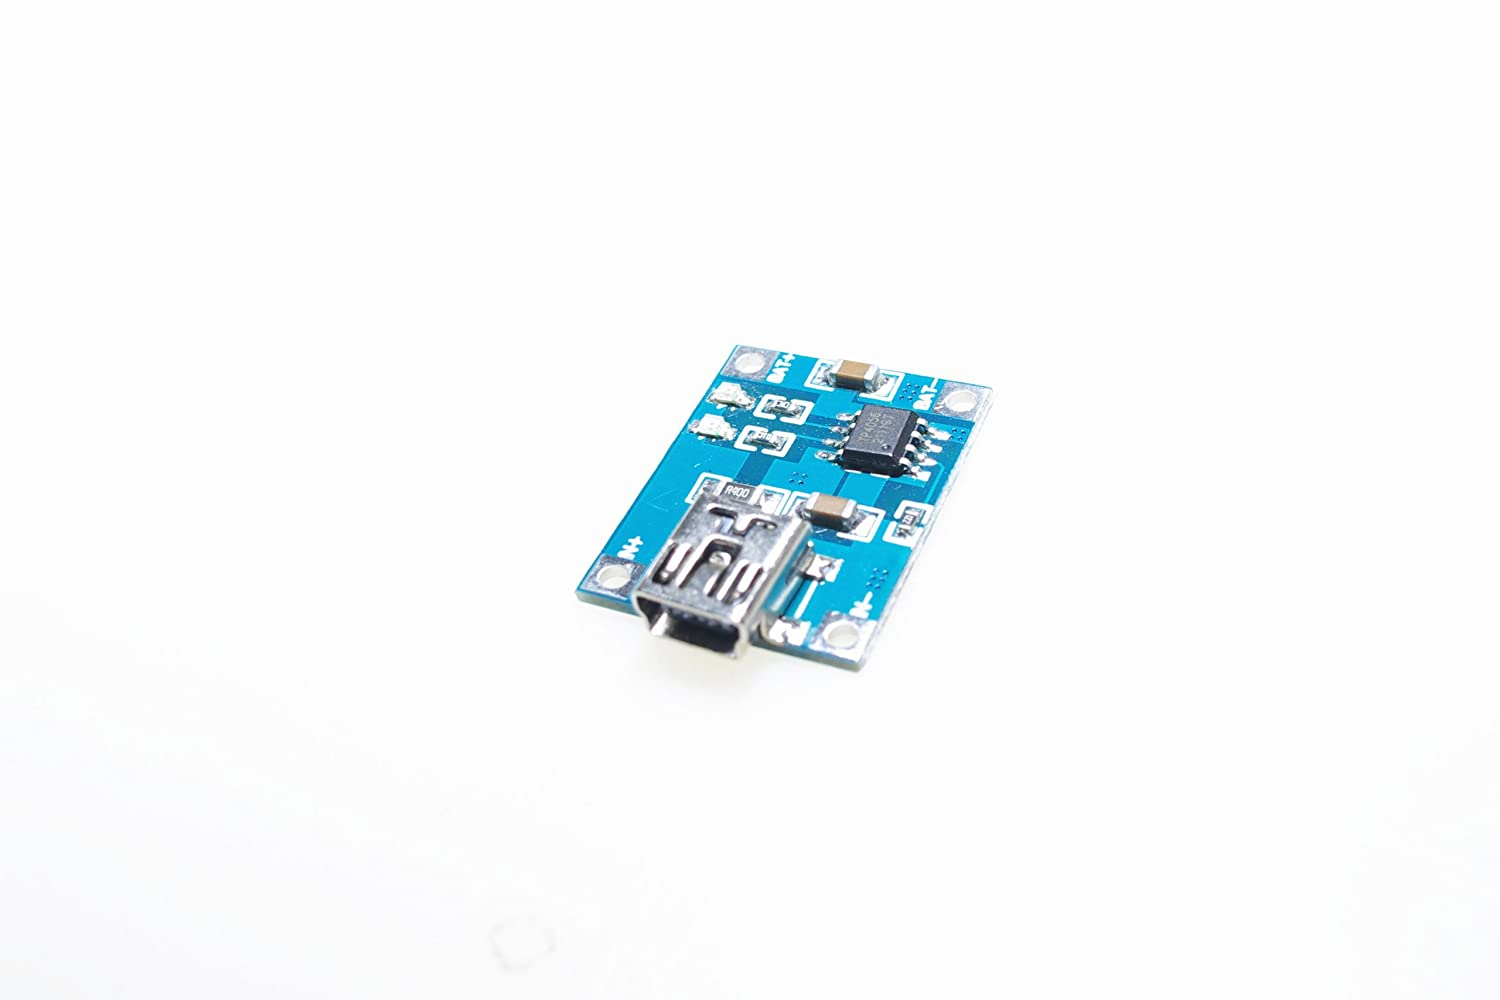 Smakn 5v Lithium Battery Charging Tp4056 Board 5 Volt Protection Circuit As Well 12 Charger Mini Usb 1a Module Diy Home Audio Theater